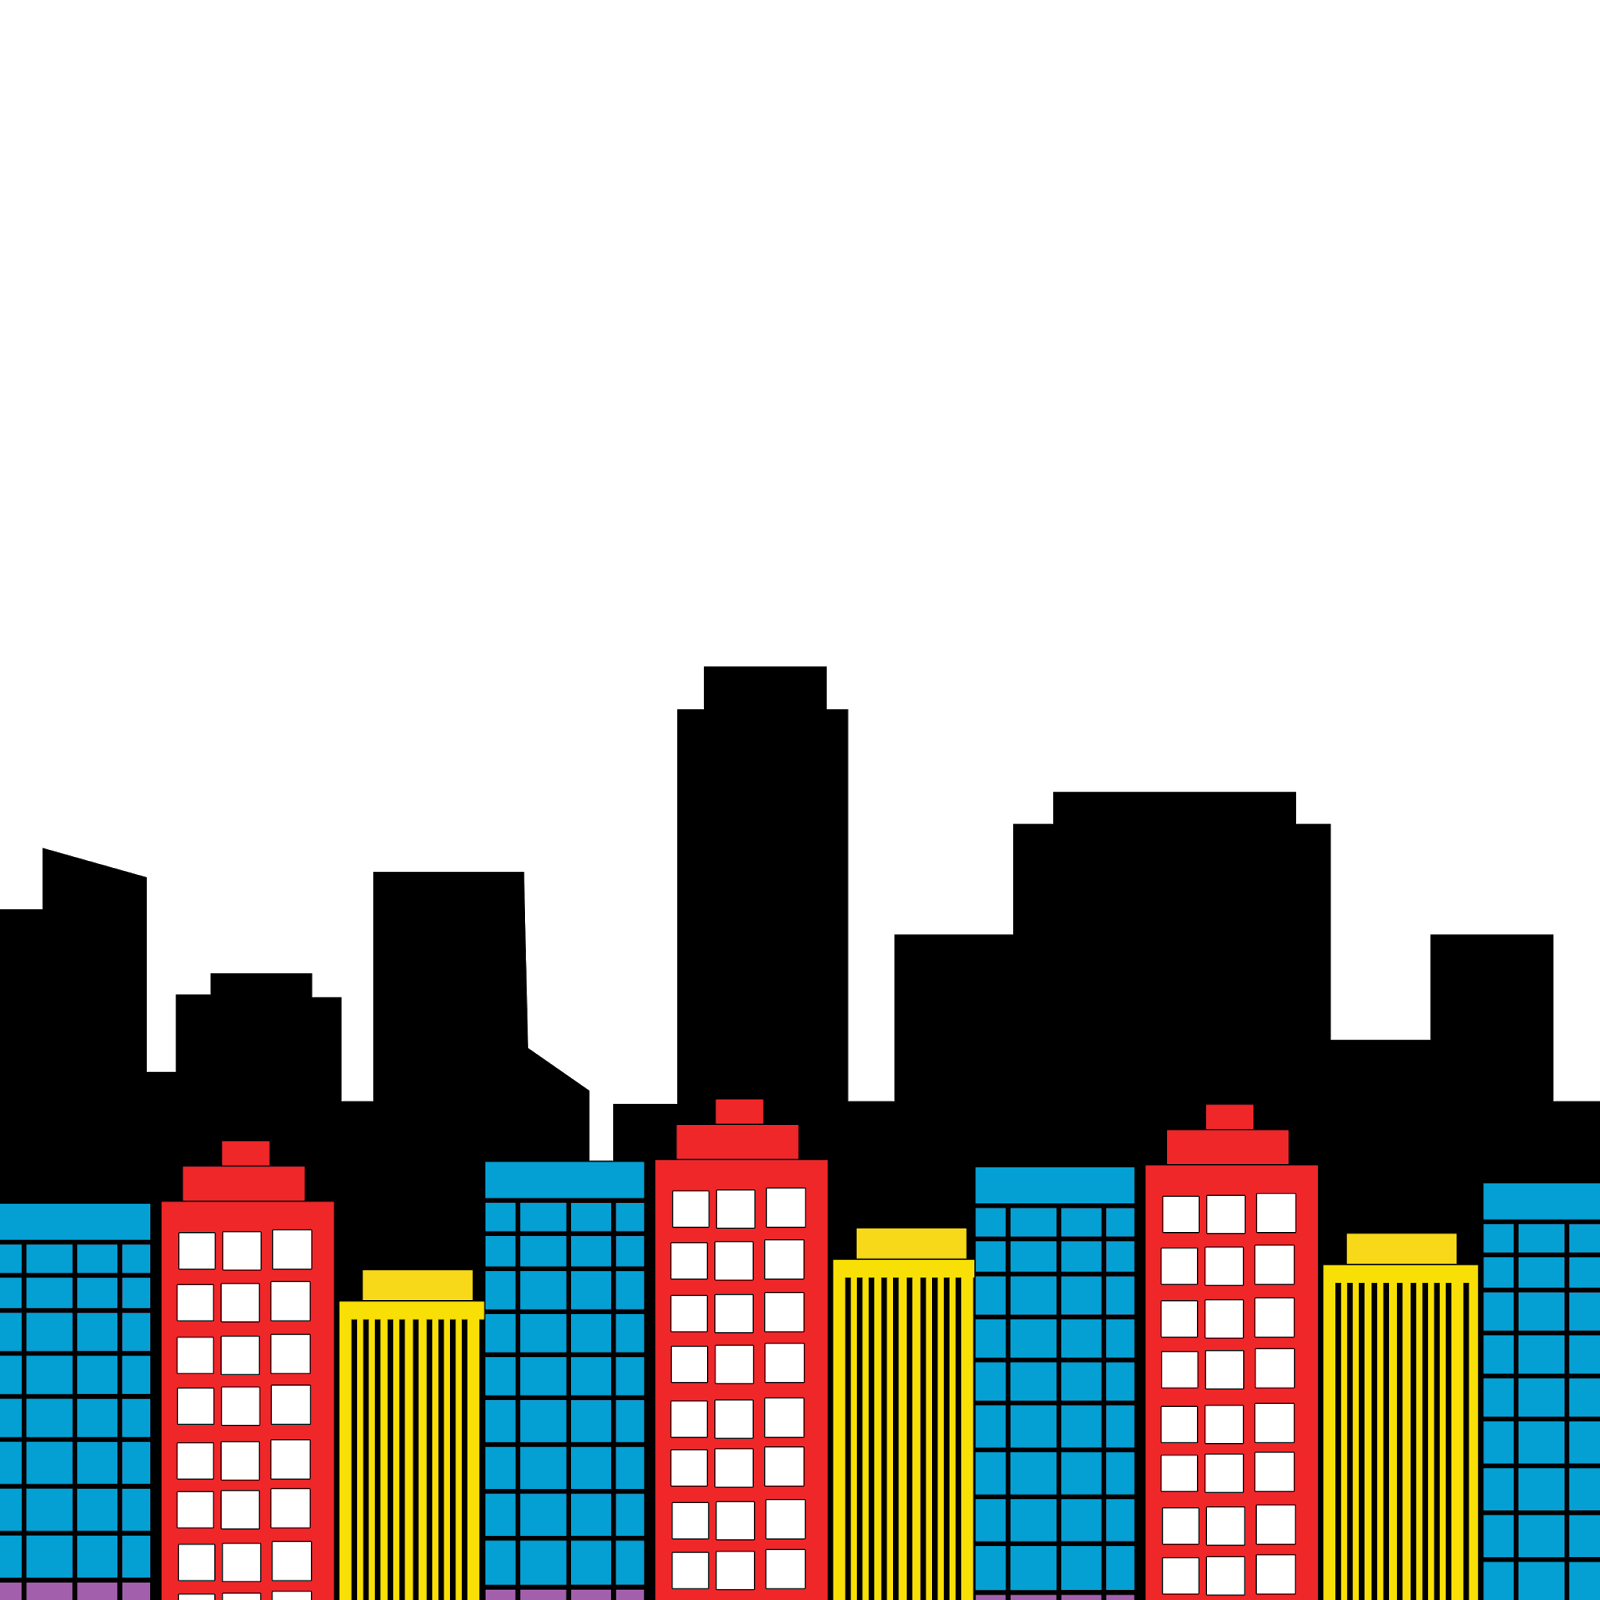 Superhero skyline png. Pin by virginia sejour